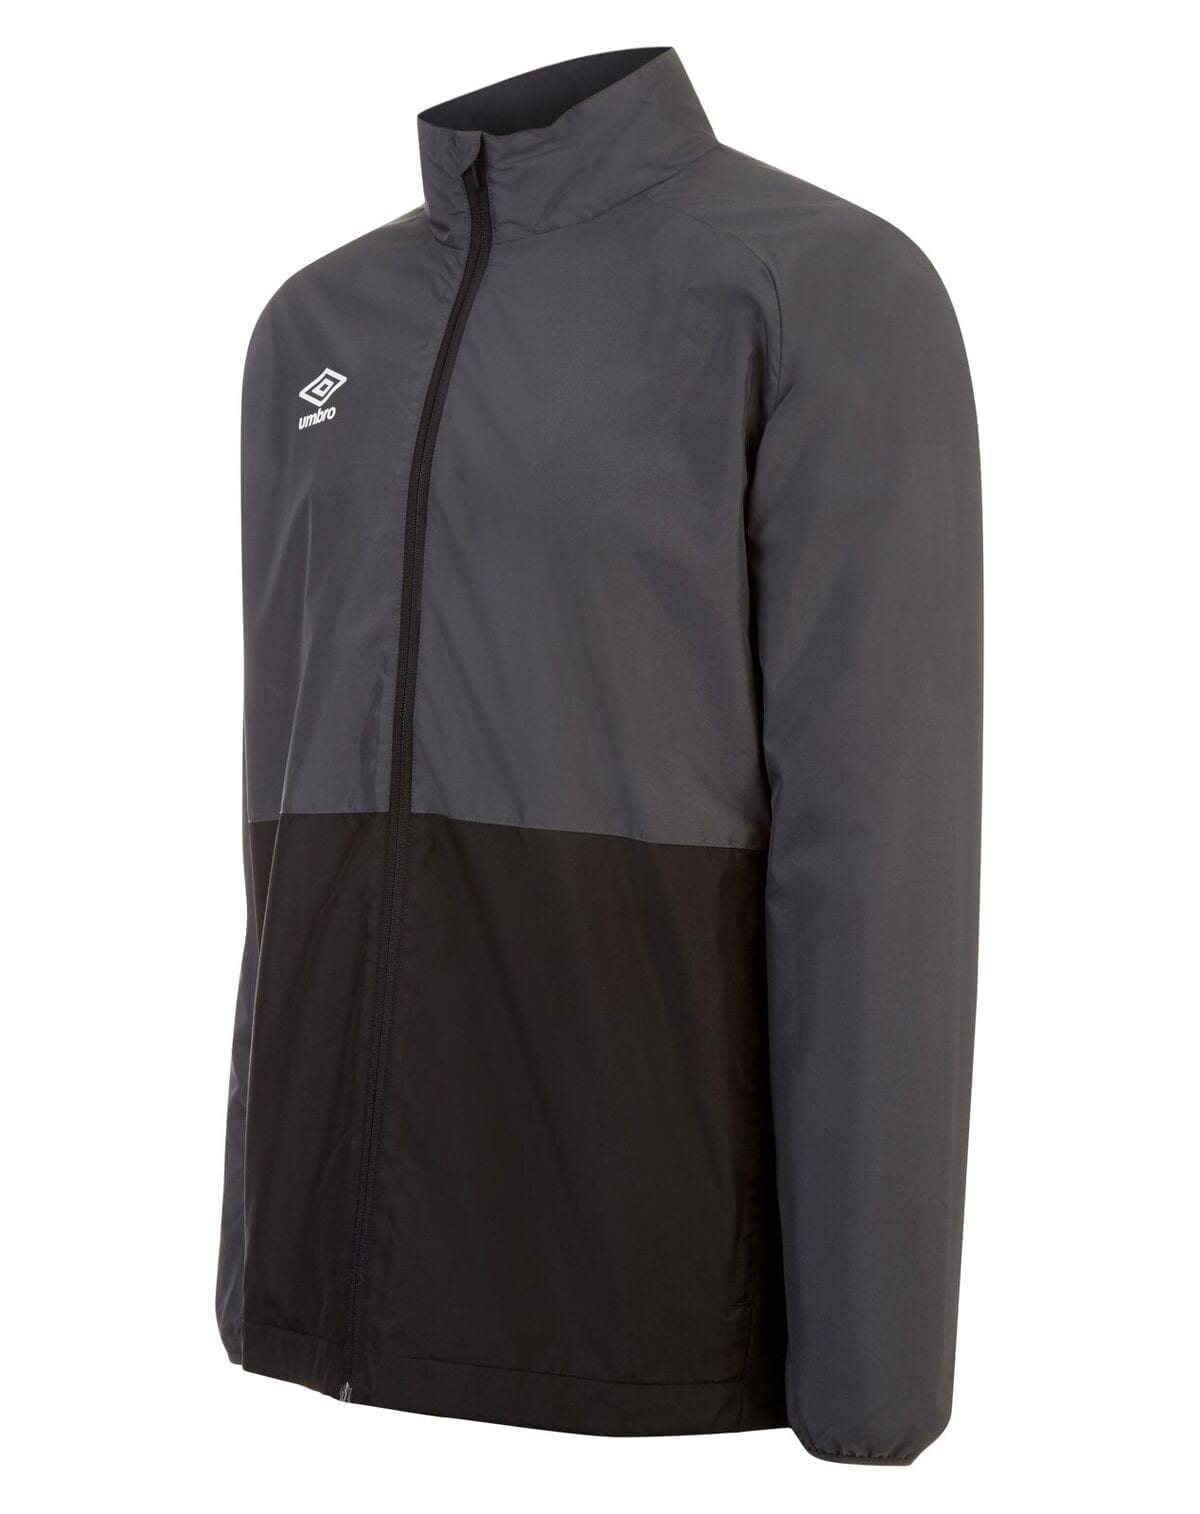 shower jacket black carbon 30482 p